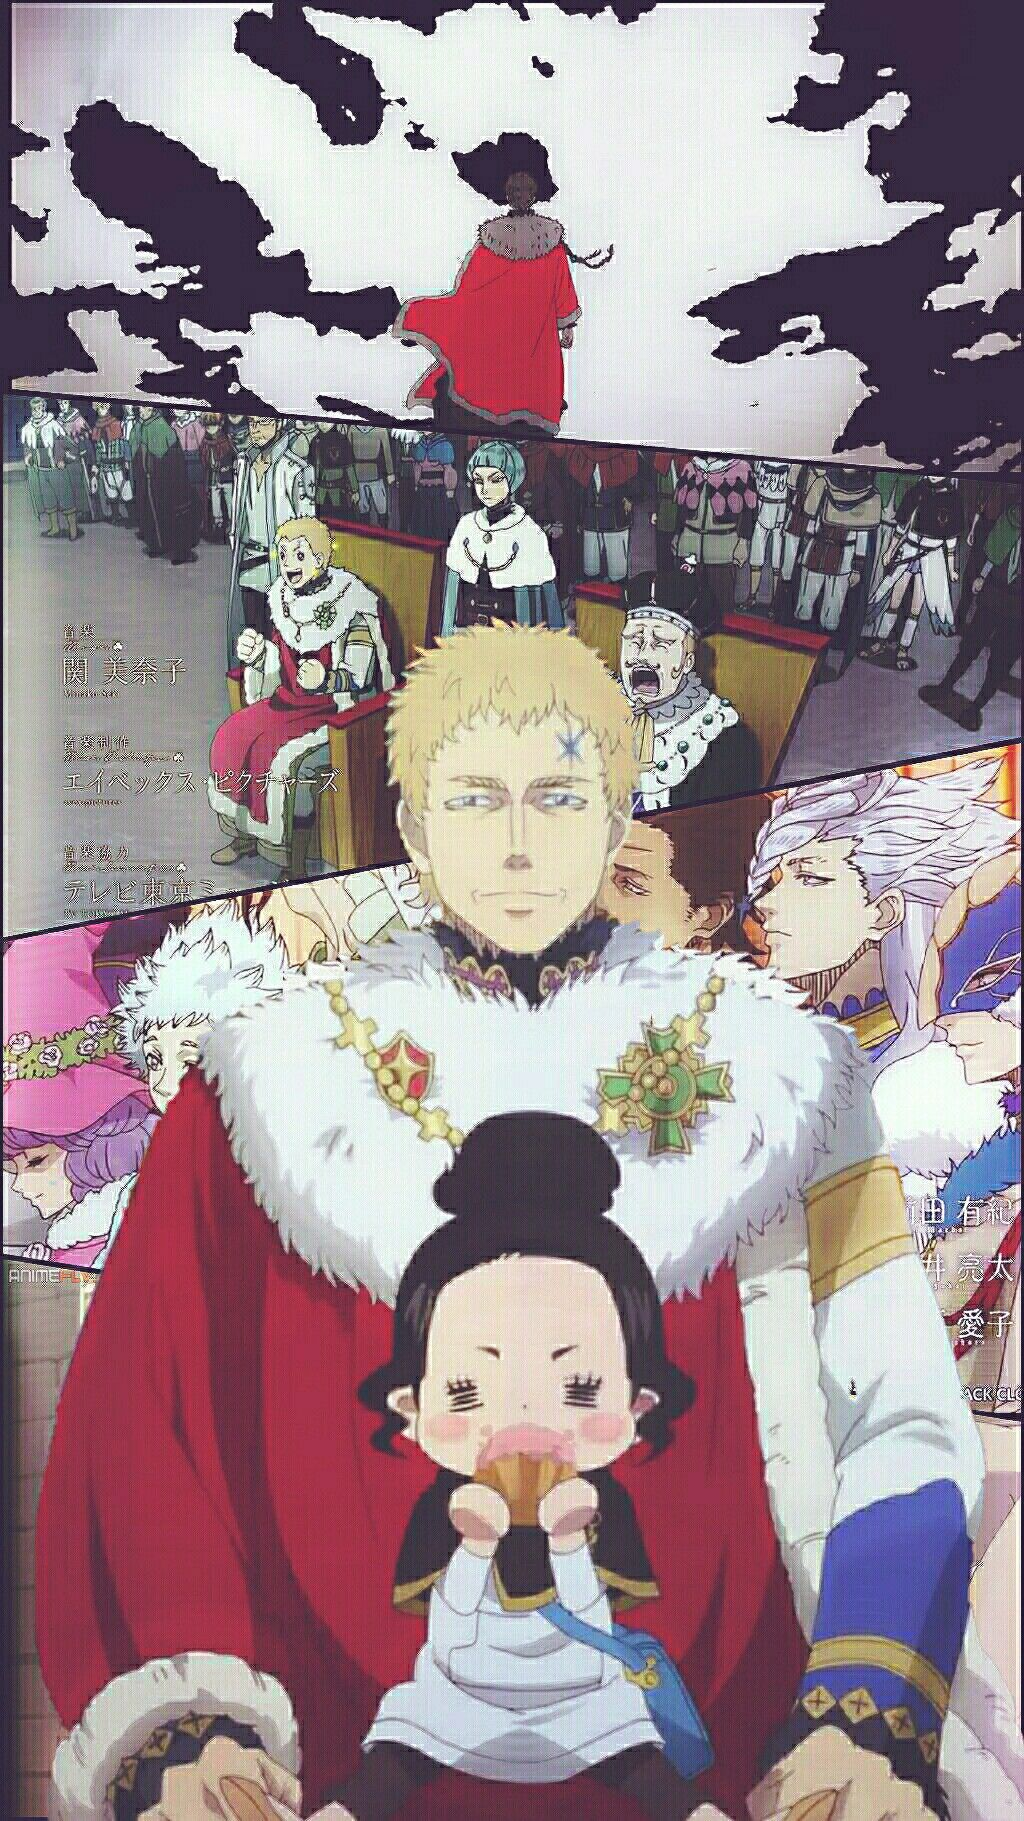 Black Clover Rey Mago Julius Novachrono Y Charmy Fondo De Pantalla Black Clover Anime Black Clover Manga Anime Spoiler there is still a possibility that julius nova chrono. pinterest